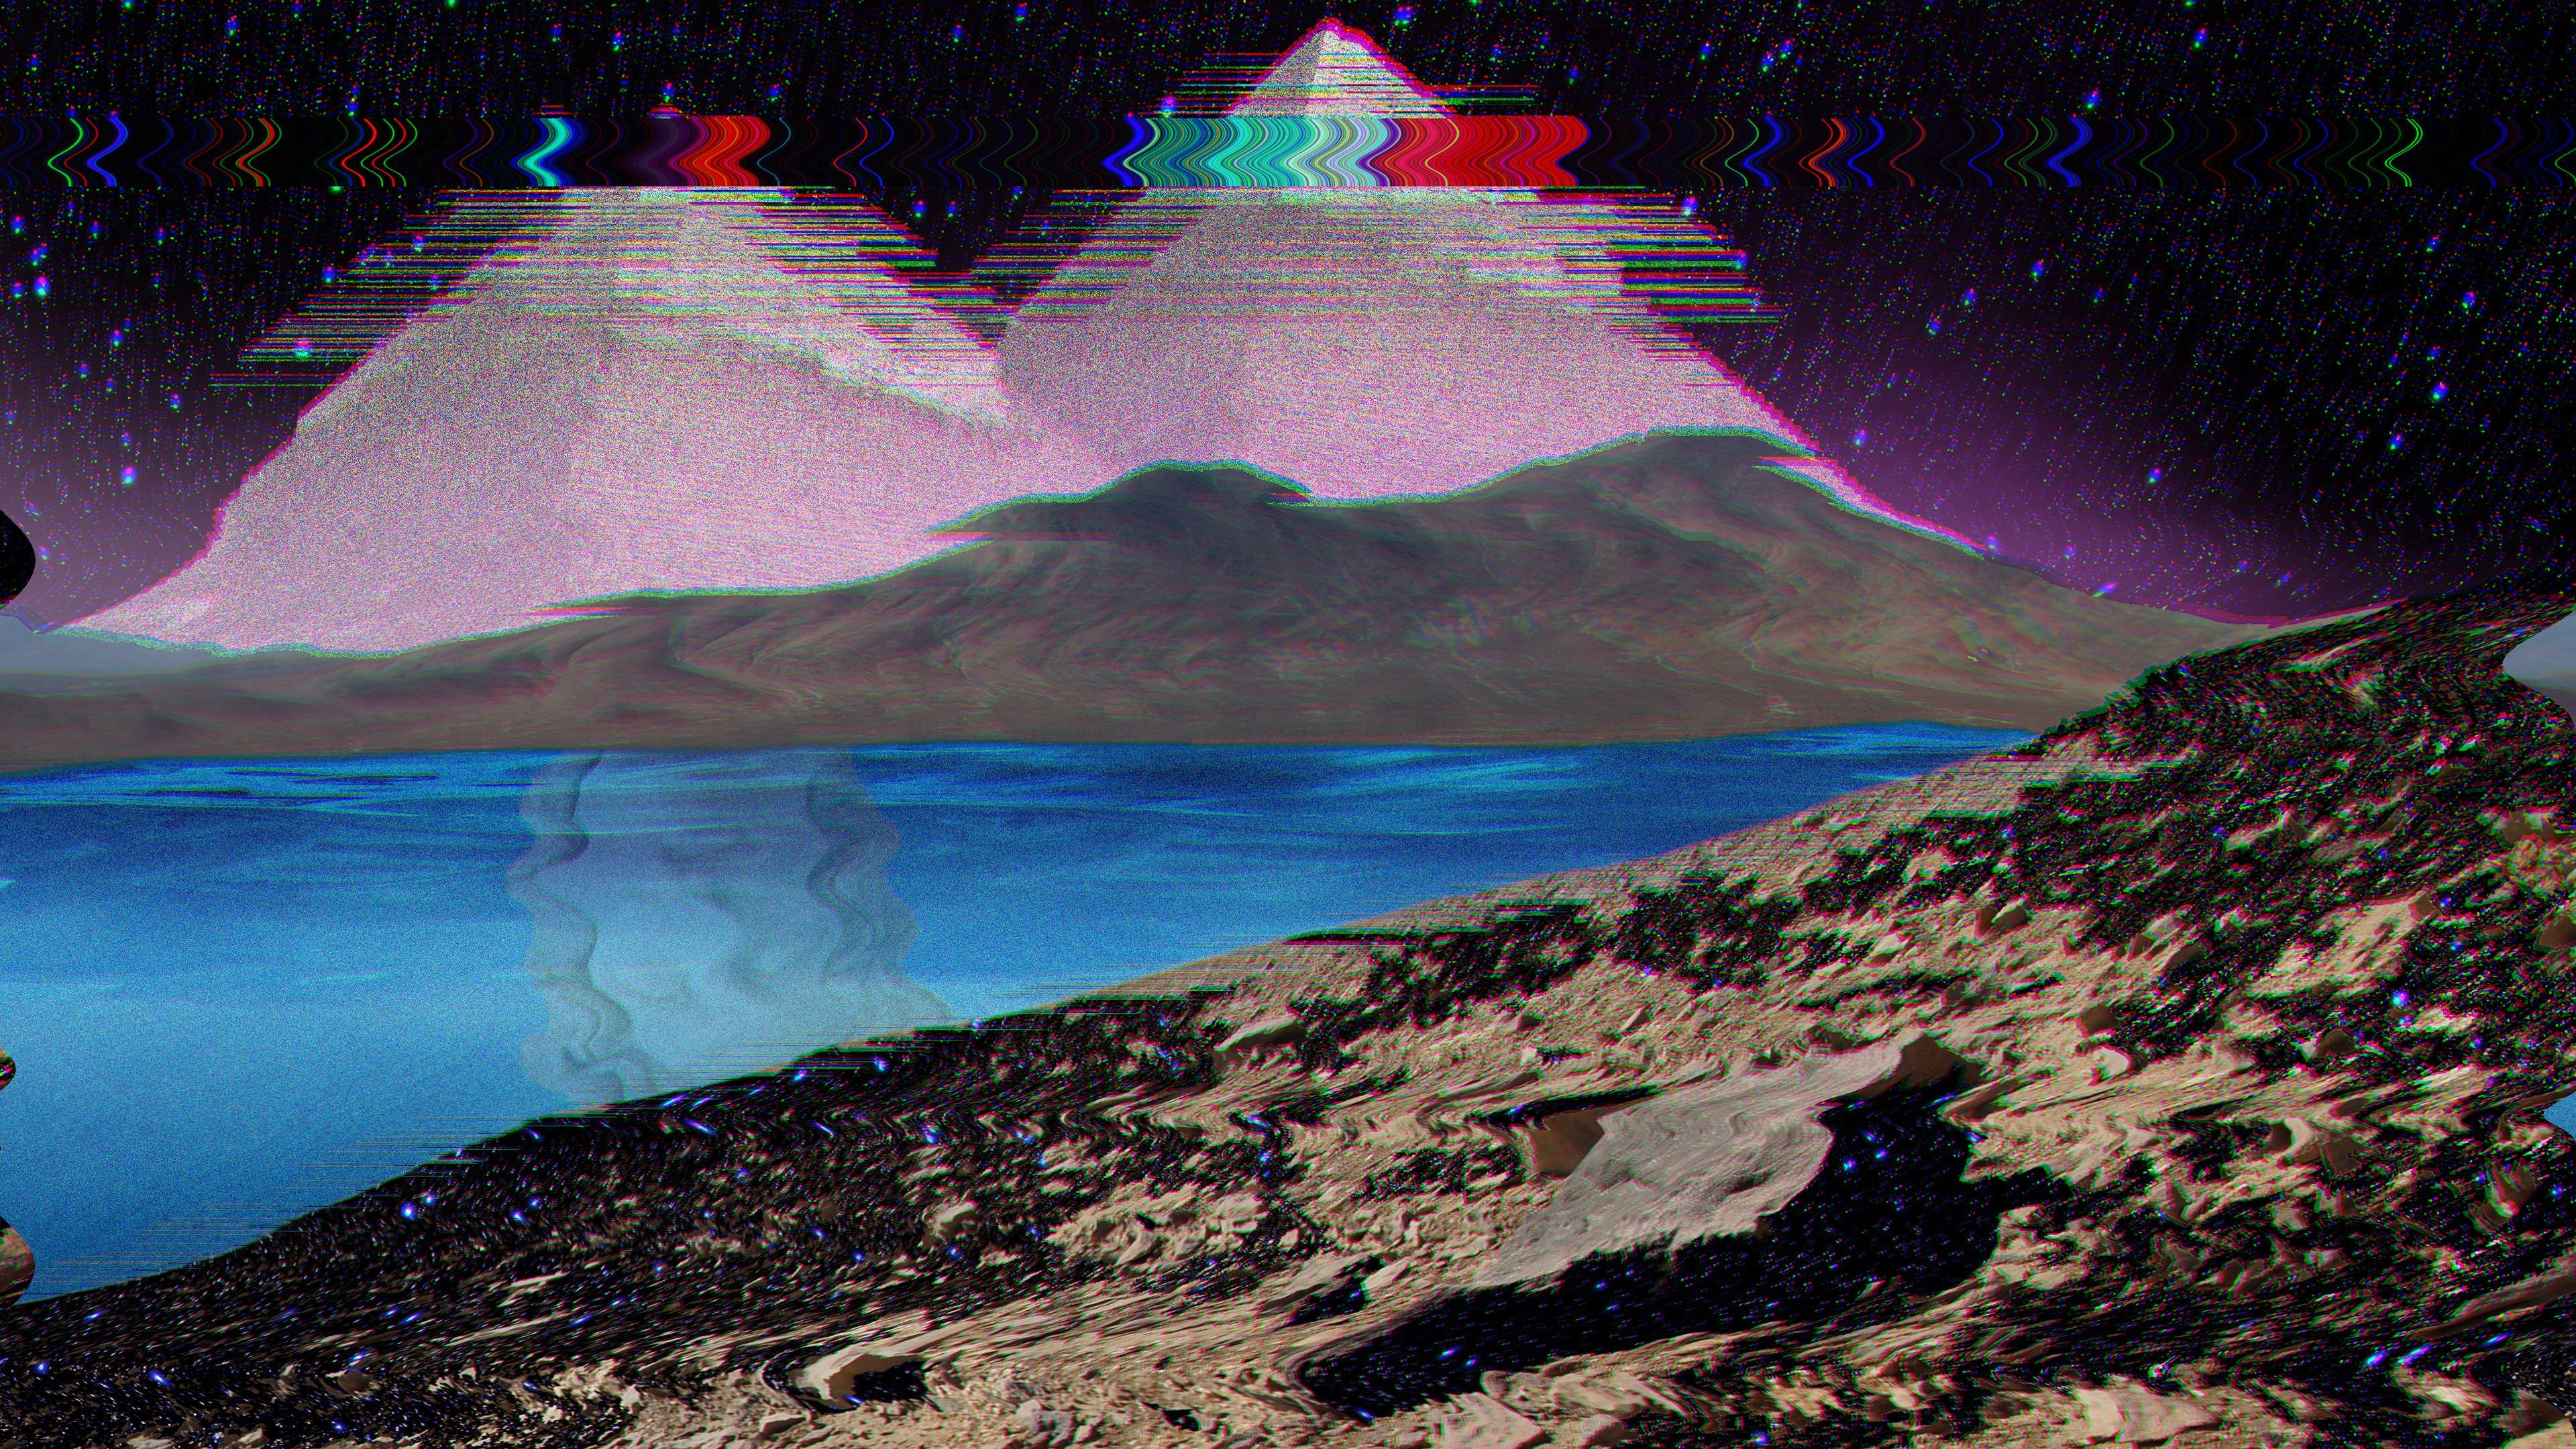 vaporwave wallpapers 4k for your phone and desktop screen